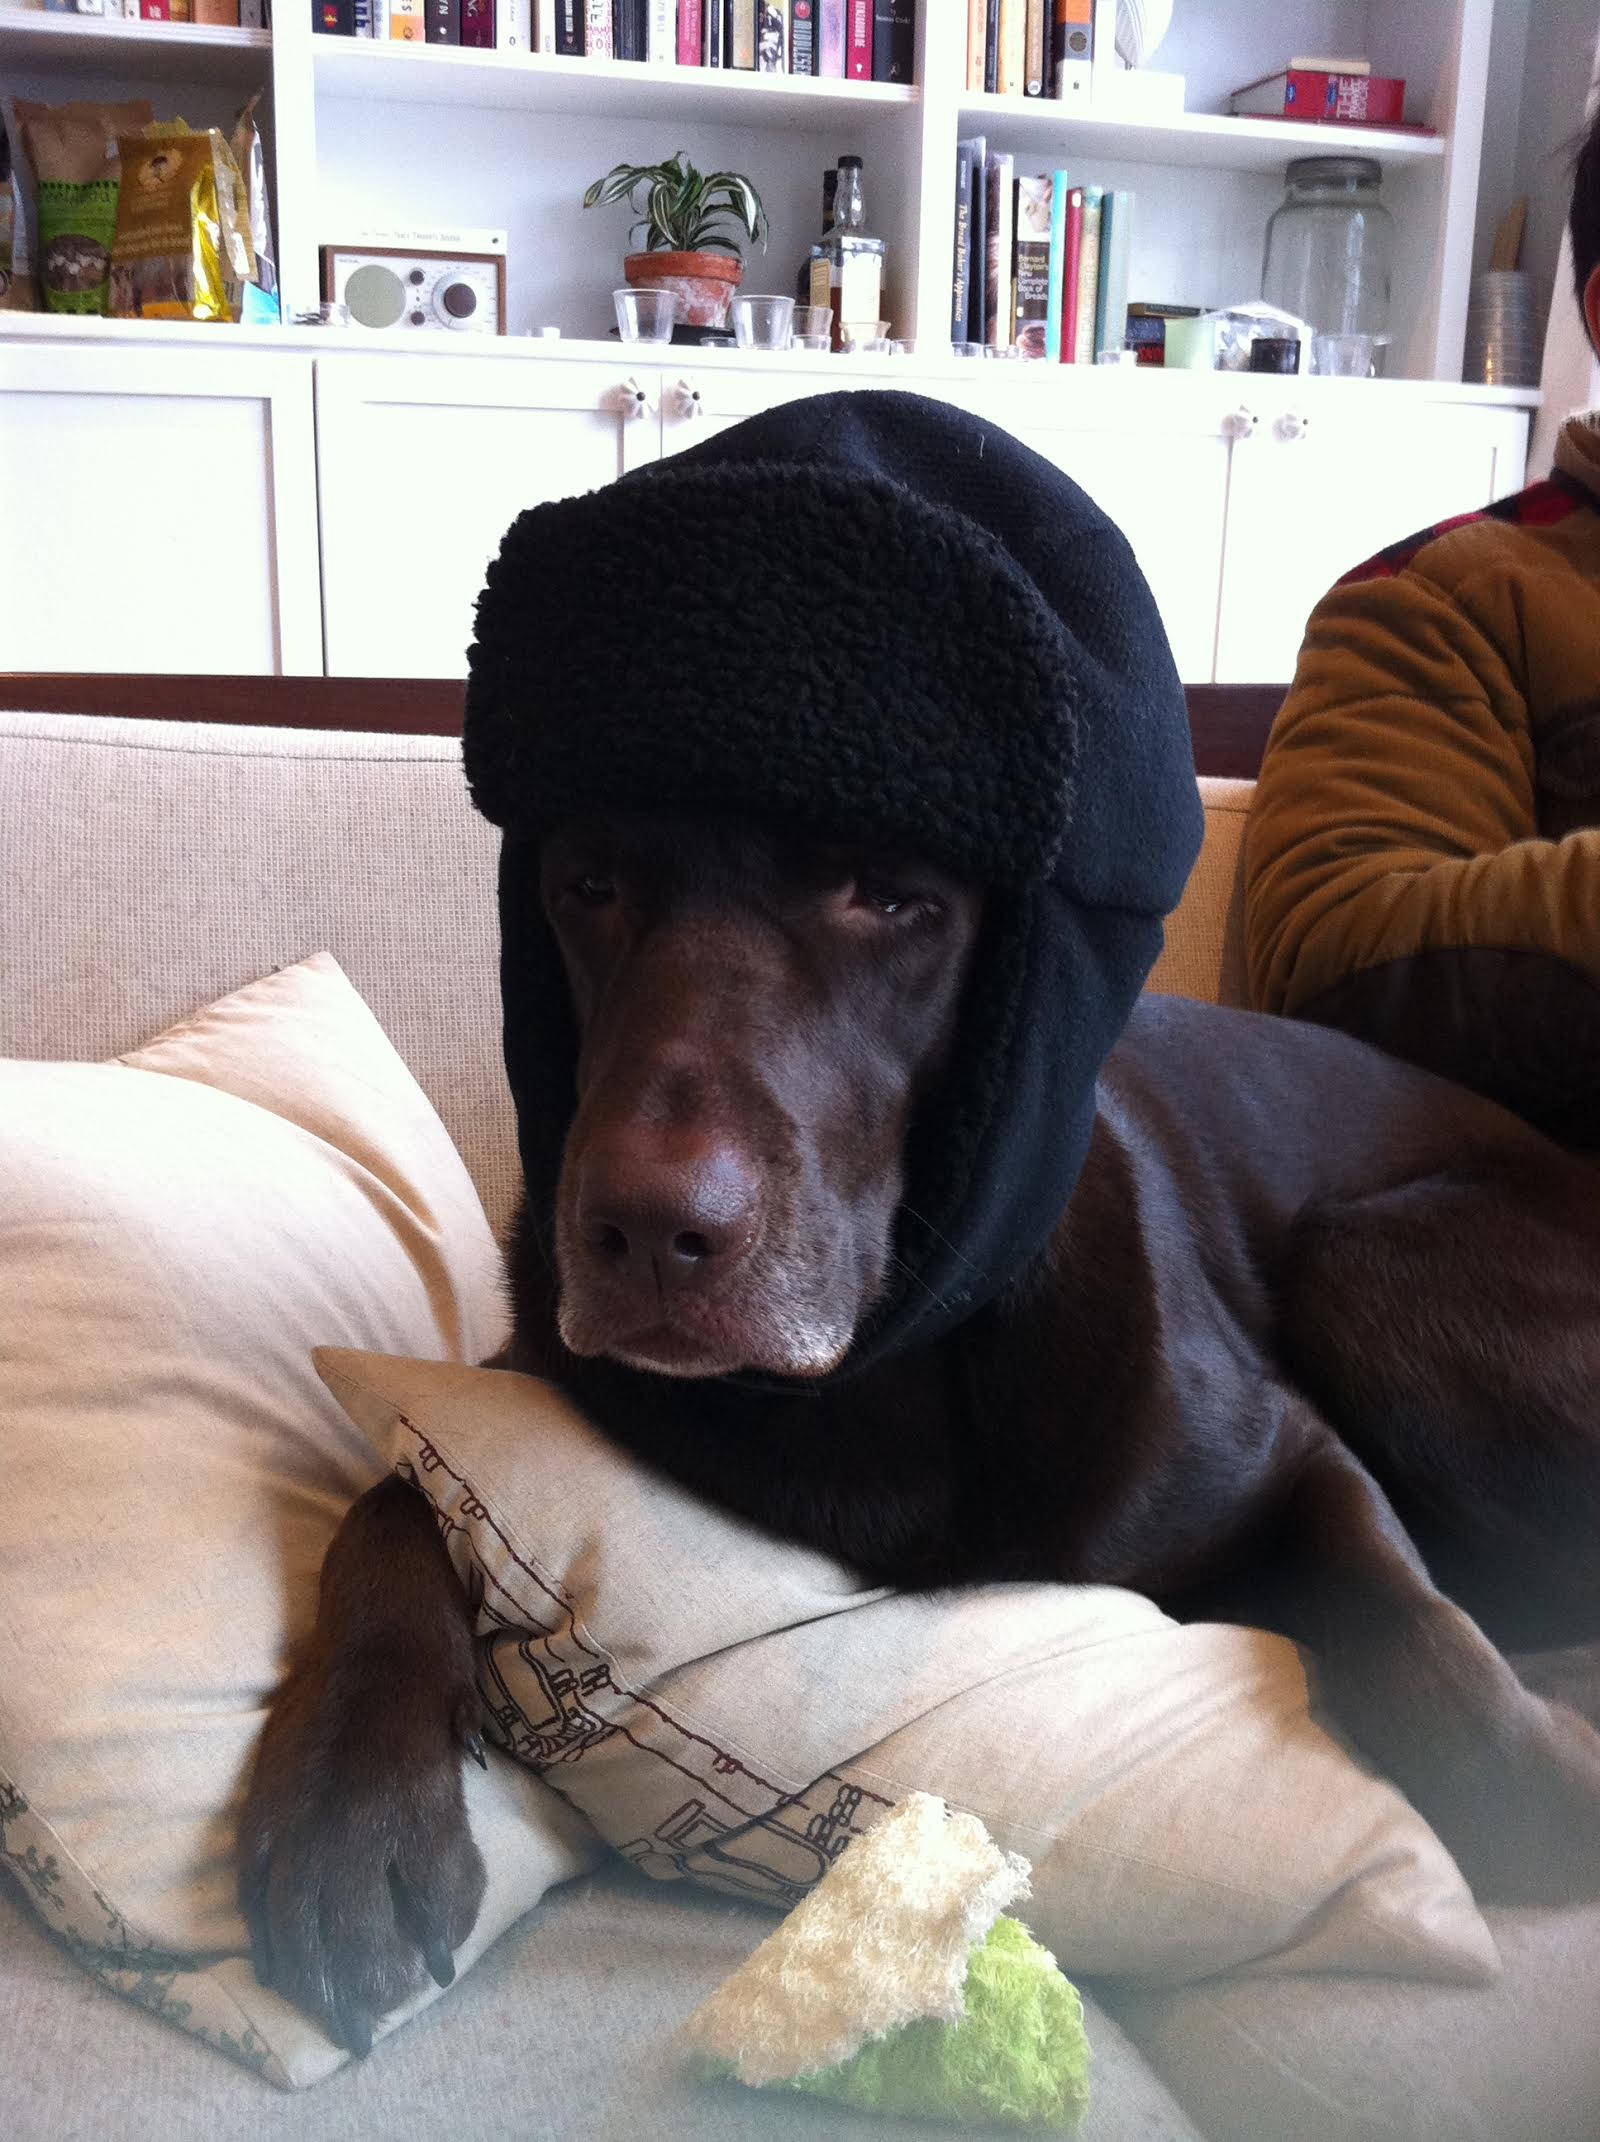 Dog with crazy hat on